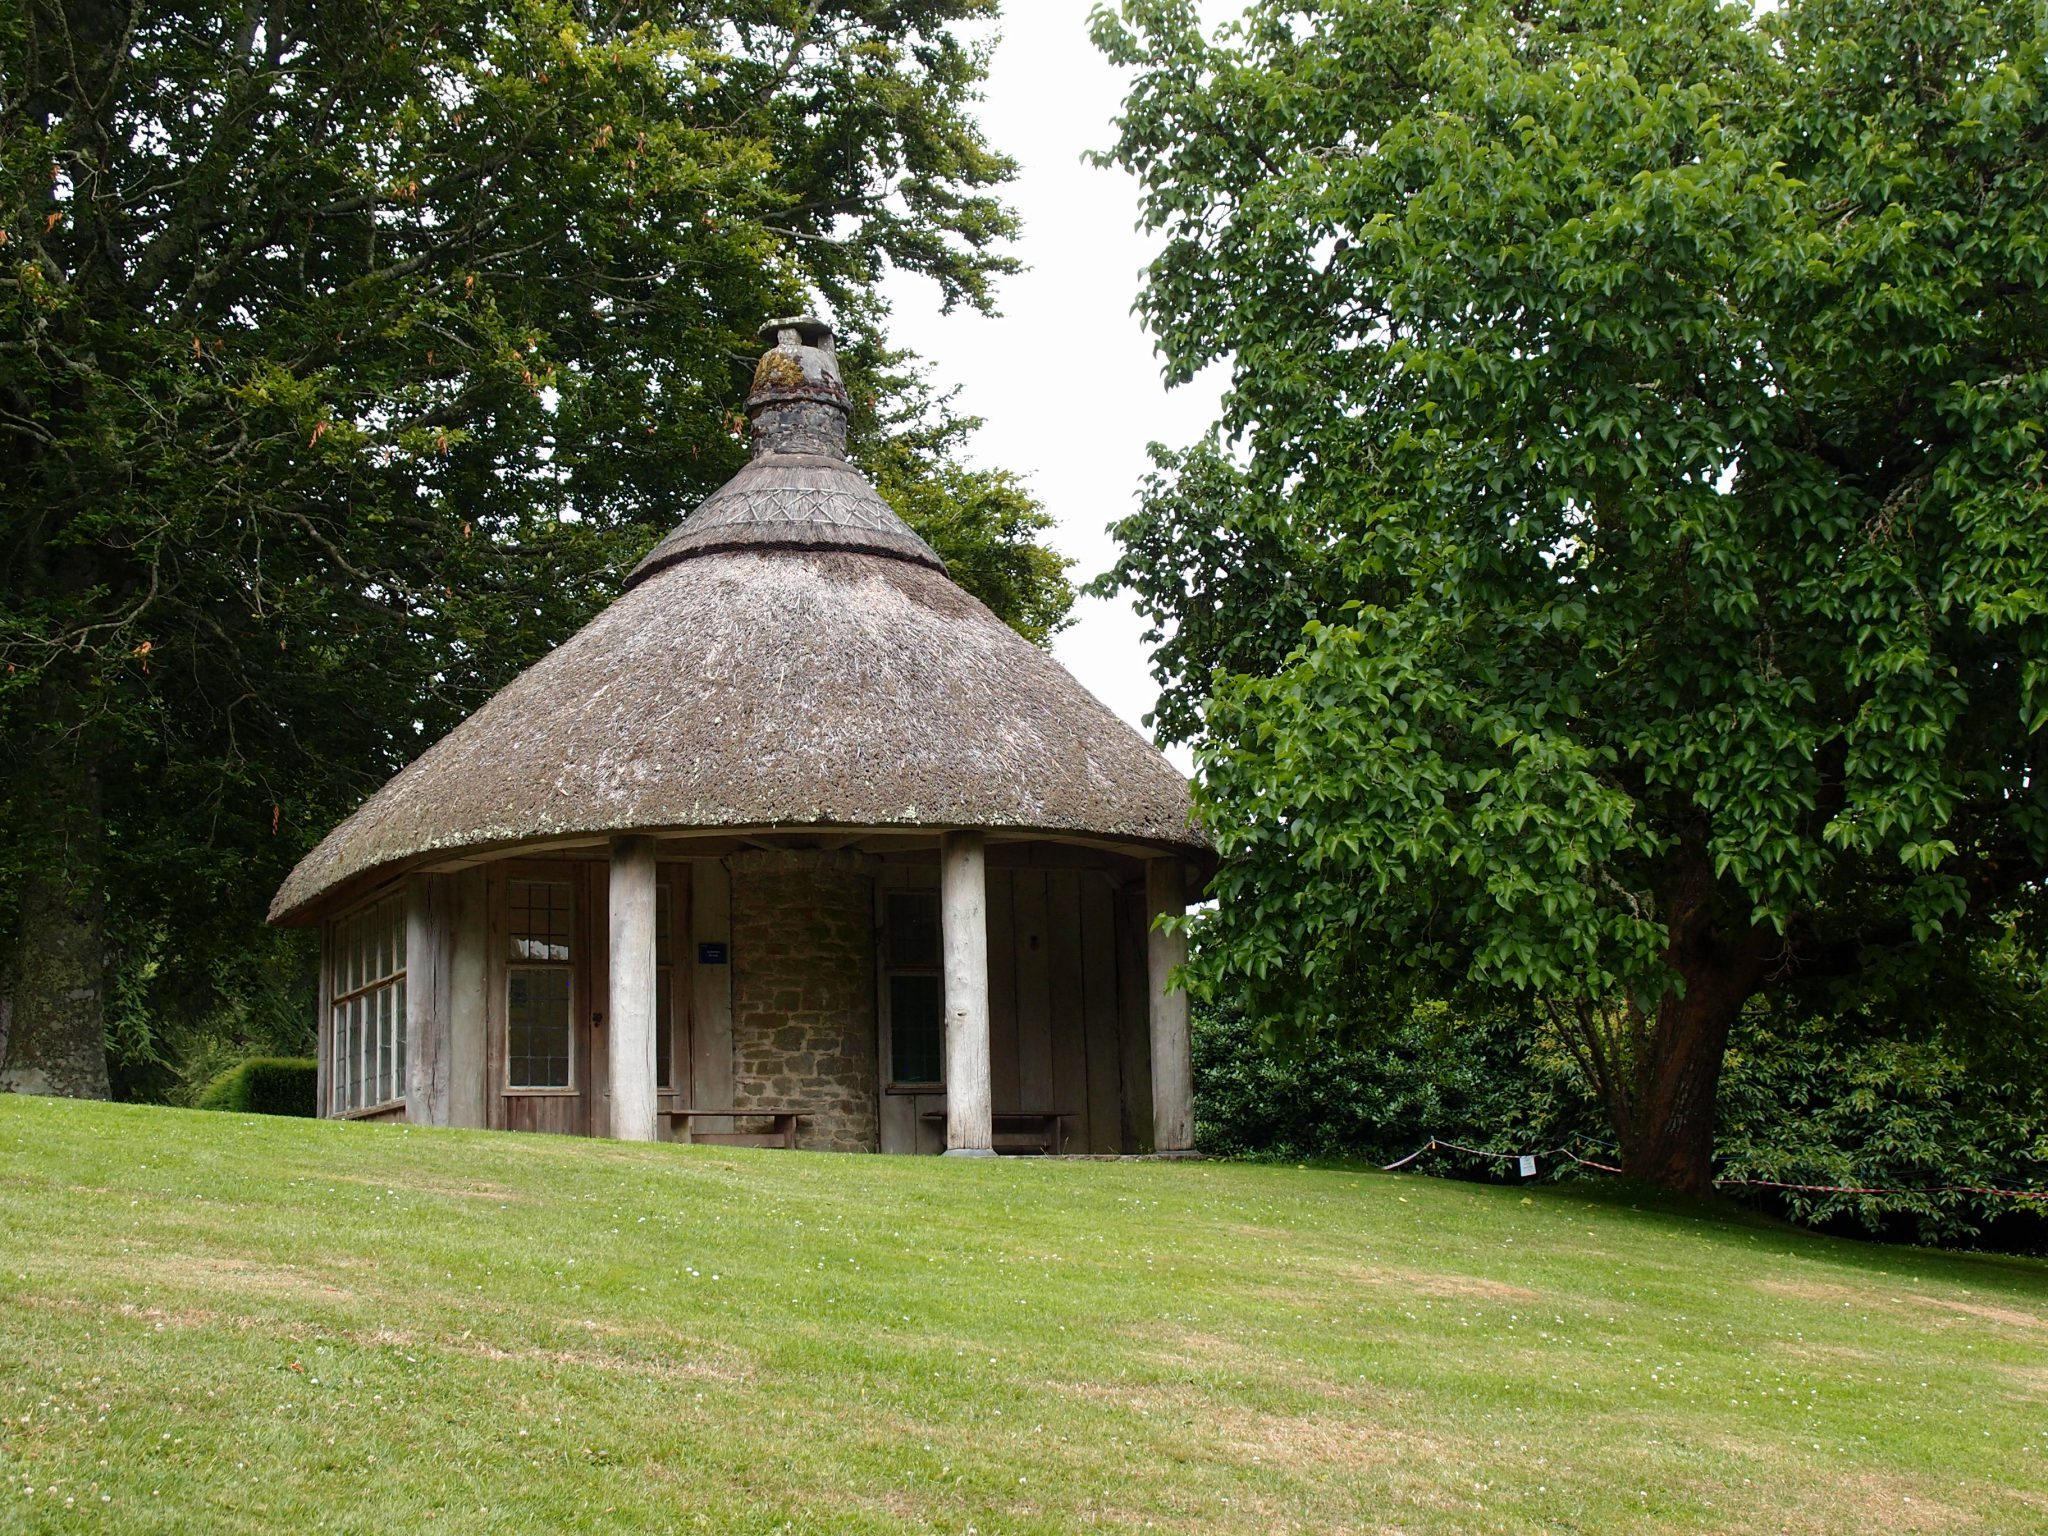 The Garden Summerhouse: designed in 1929, rebuilt after a fire in the 1980s.